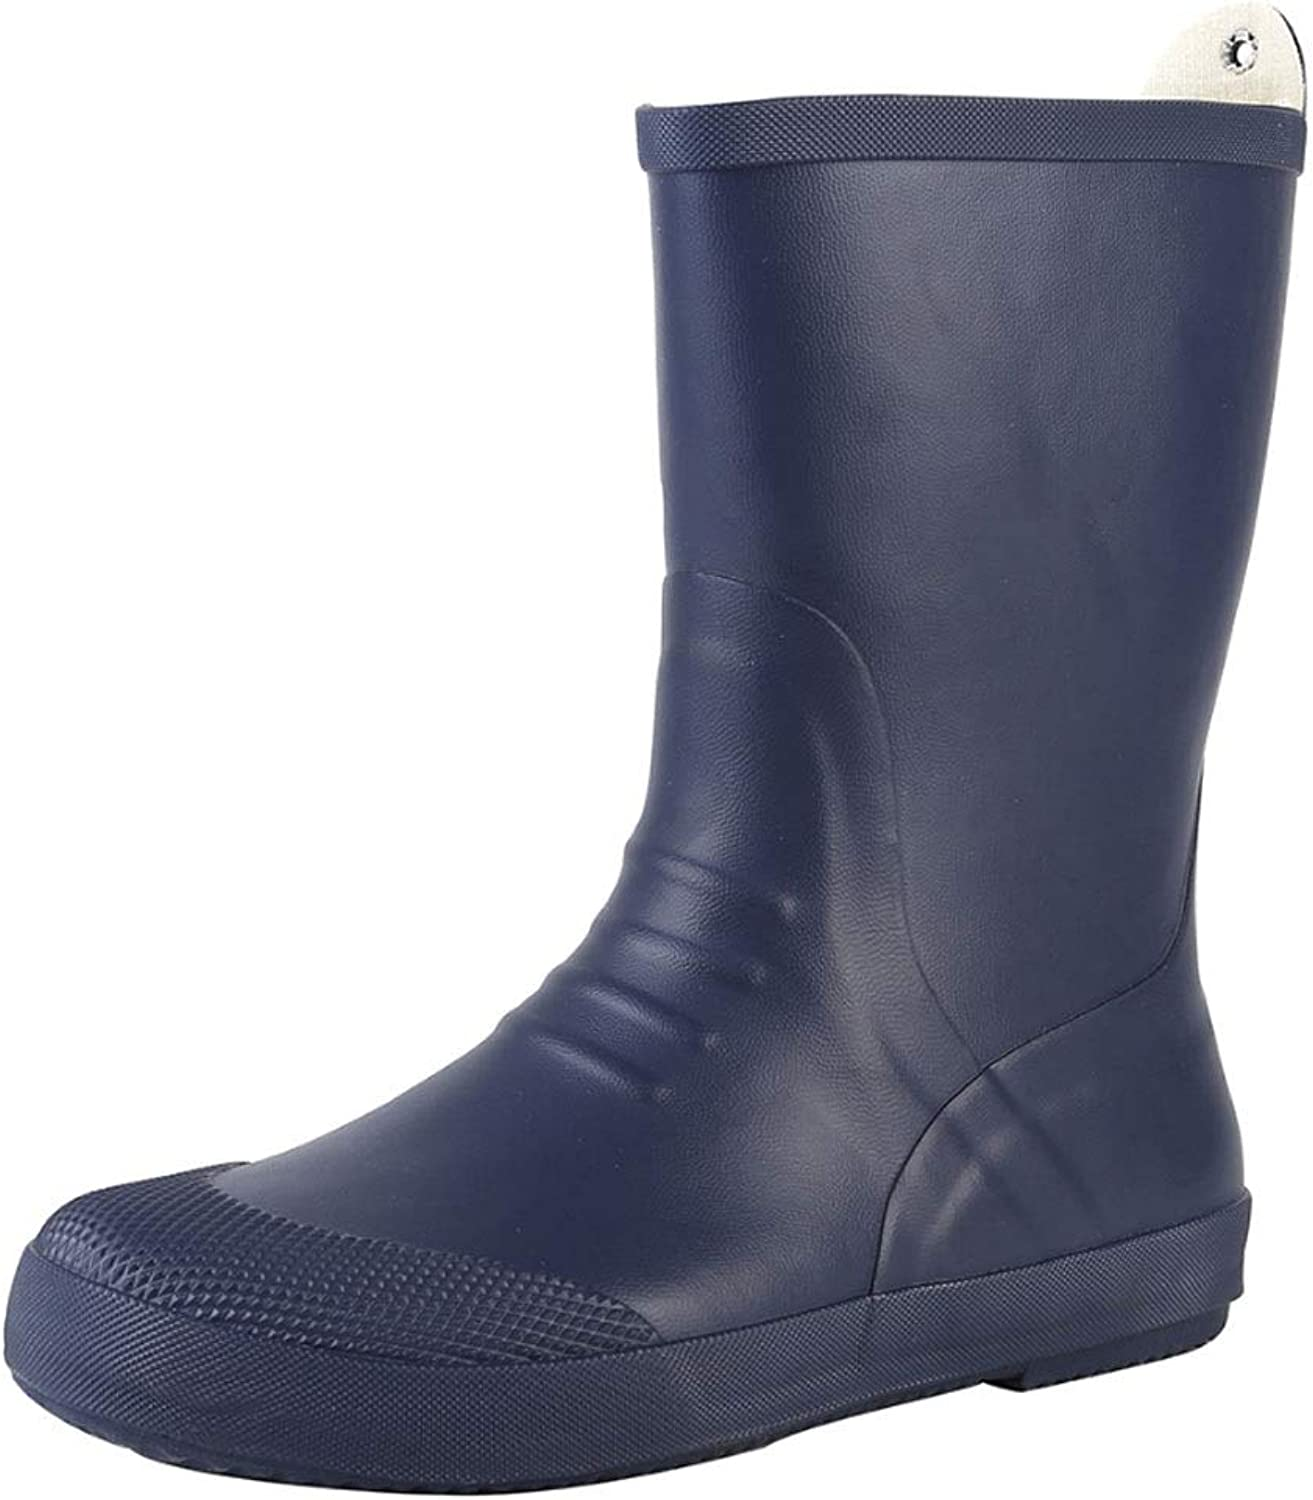 FRF Rain Boots- Men's Simple Waterproof Non-Slip Boots, Outdoor Rubber Rain Boots Fishing shoes